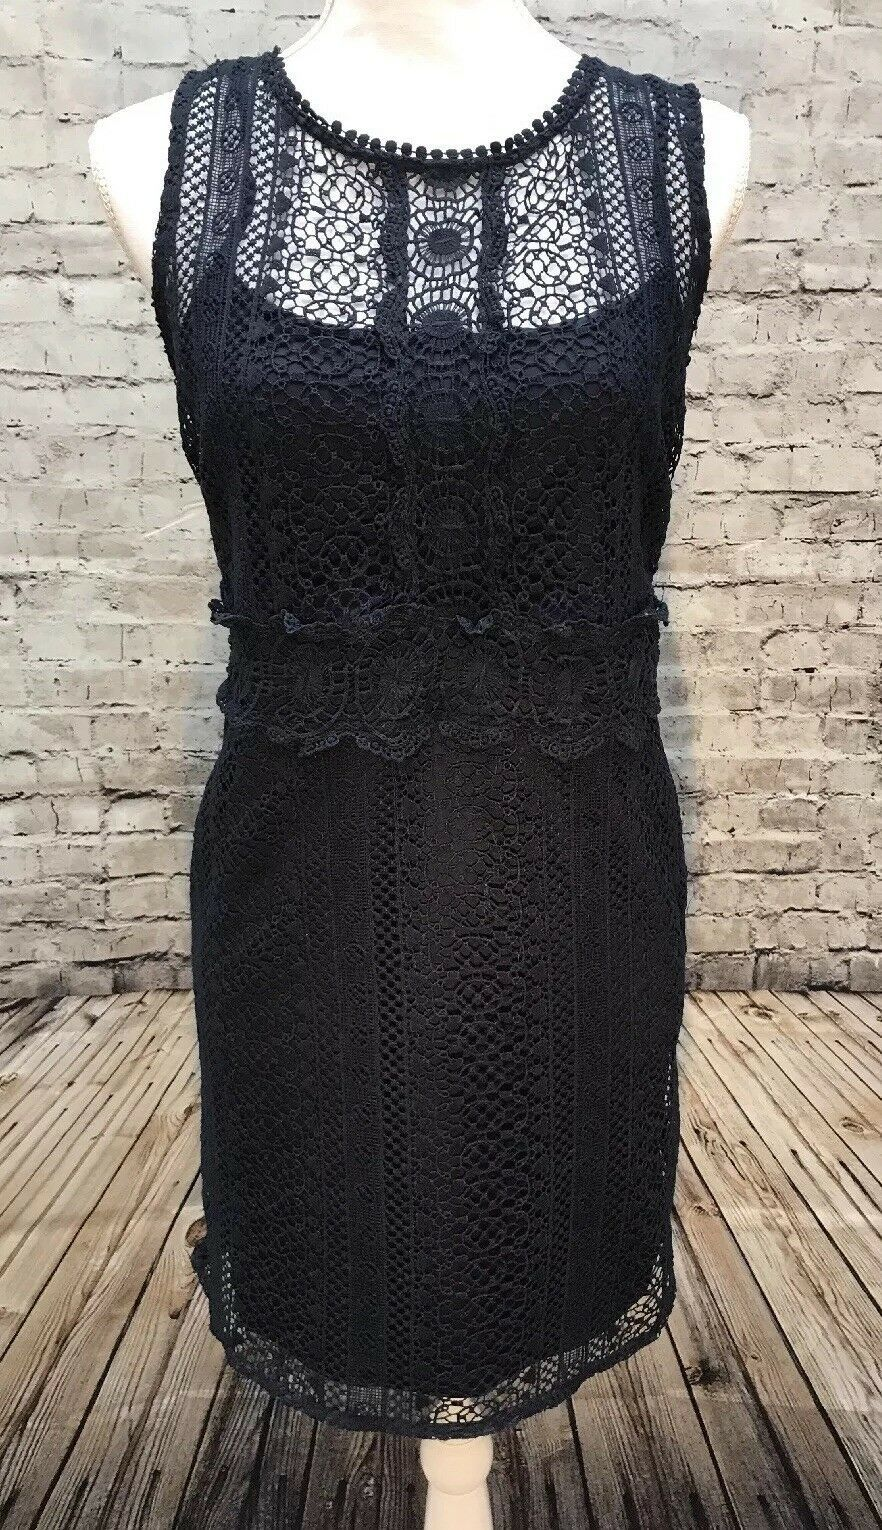 Primary image for Romeo & Juliet Couture Sleeveless Crochet Sheath Dress Women's Size Medium